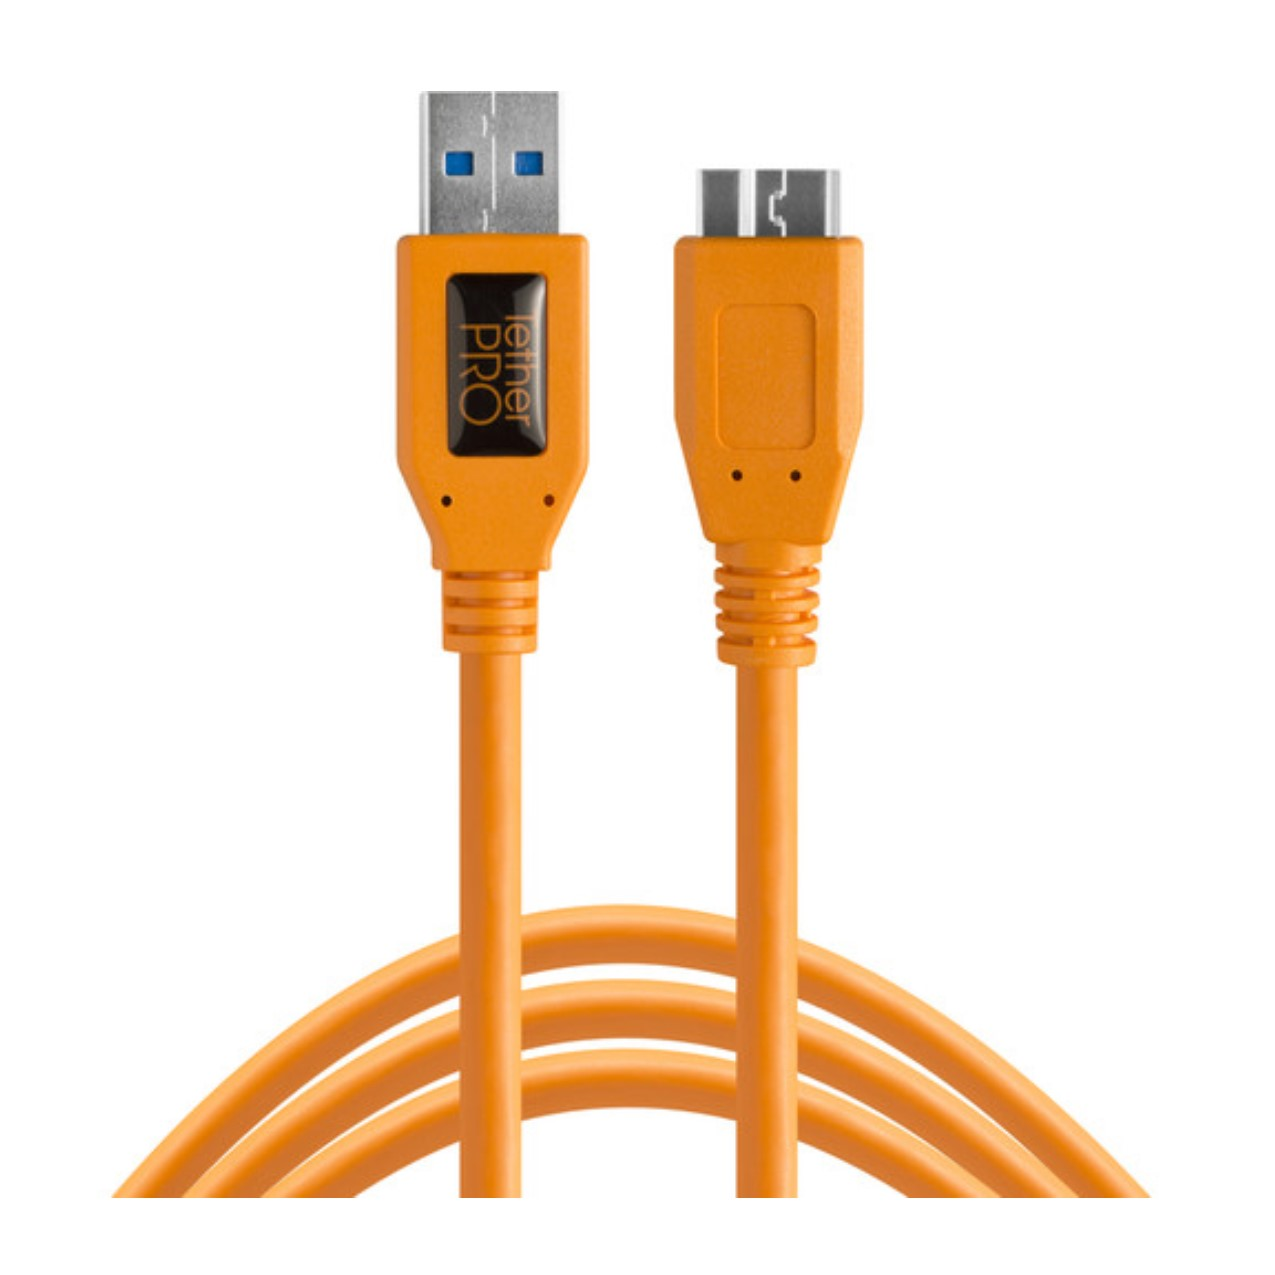 Tetherpro Usb 3.0 Male Type-A To Usb 3.0 Micro-B Cable (15′, Orange) Cabel & Accessories Cabel & Accessories